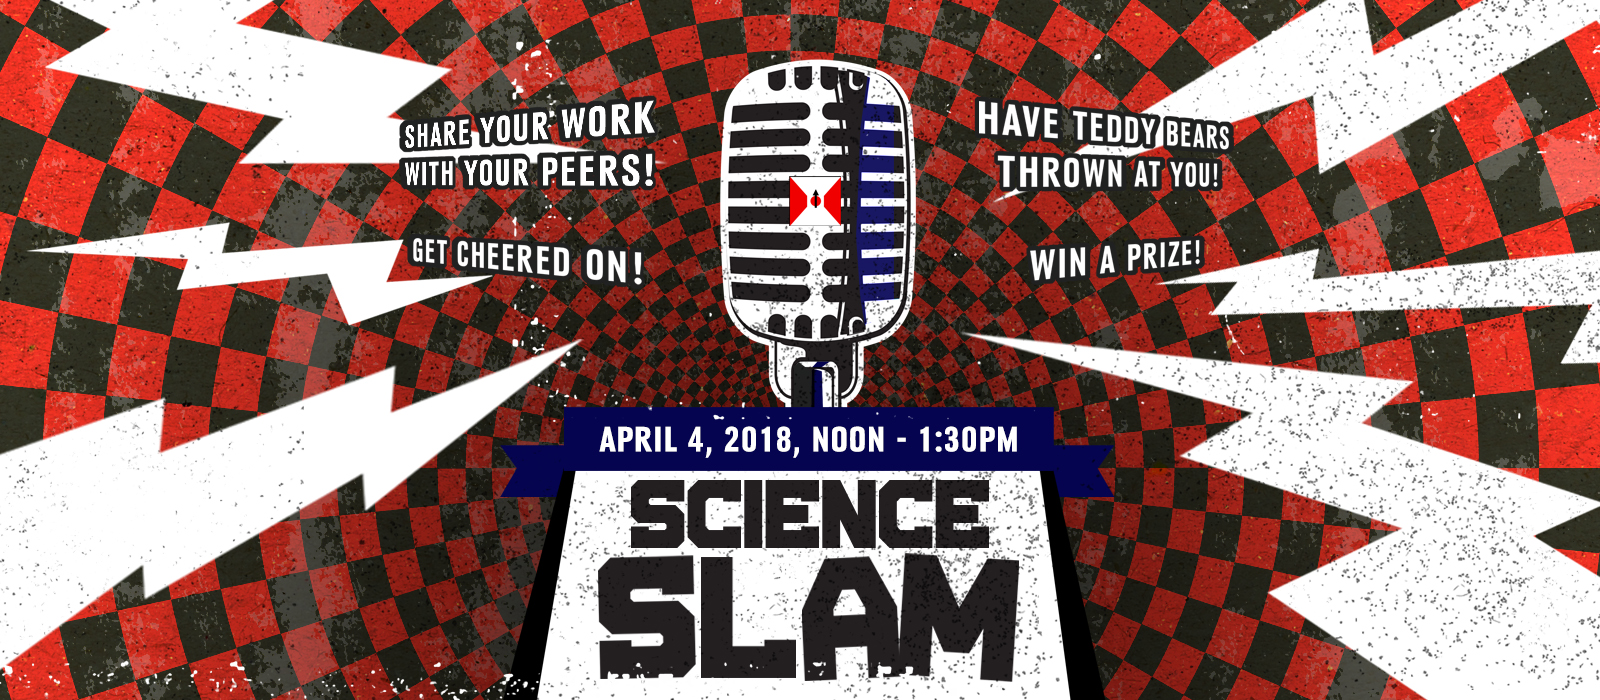 'Science Slam' campuswide contest is April 4 in the Great Hall of the Wick Alumni Center.